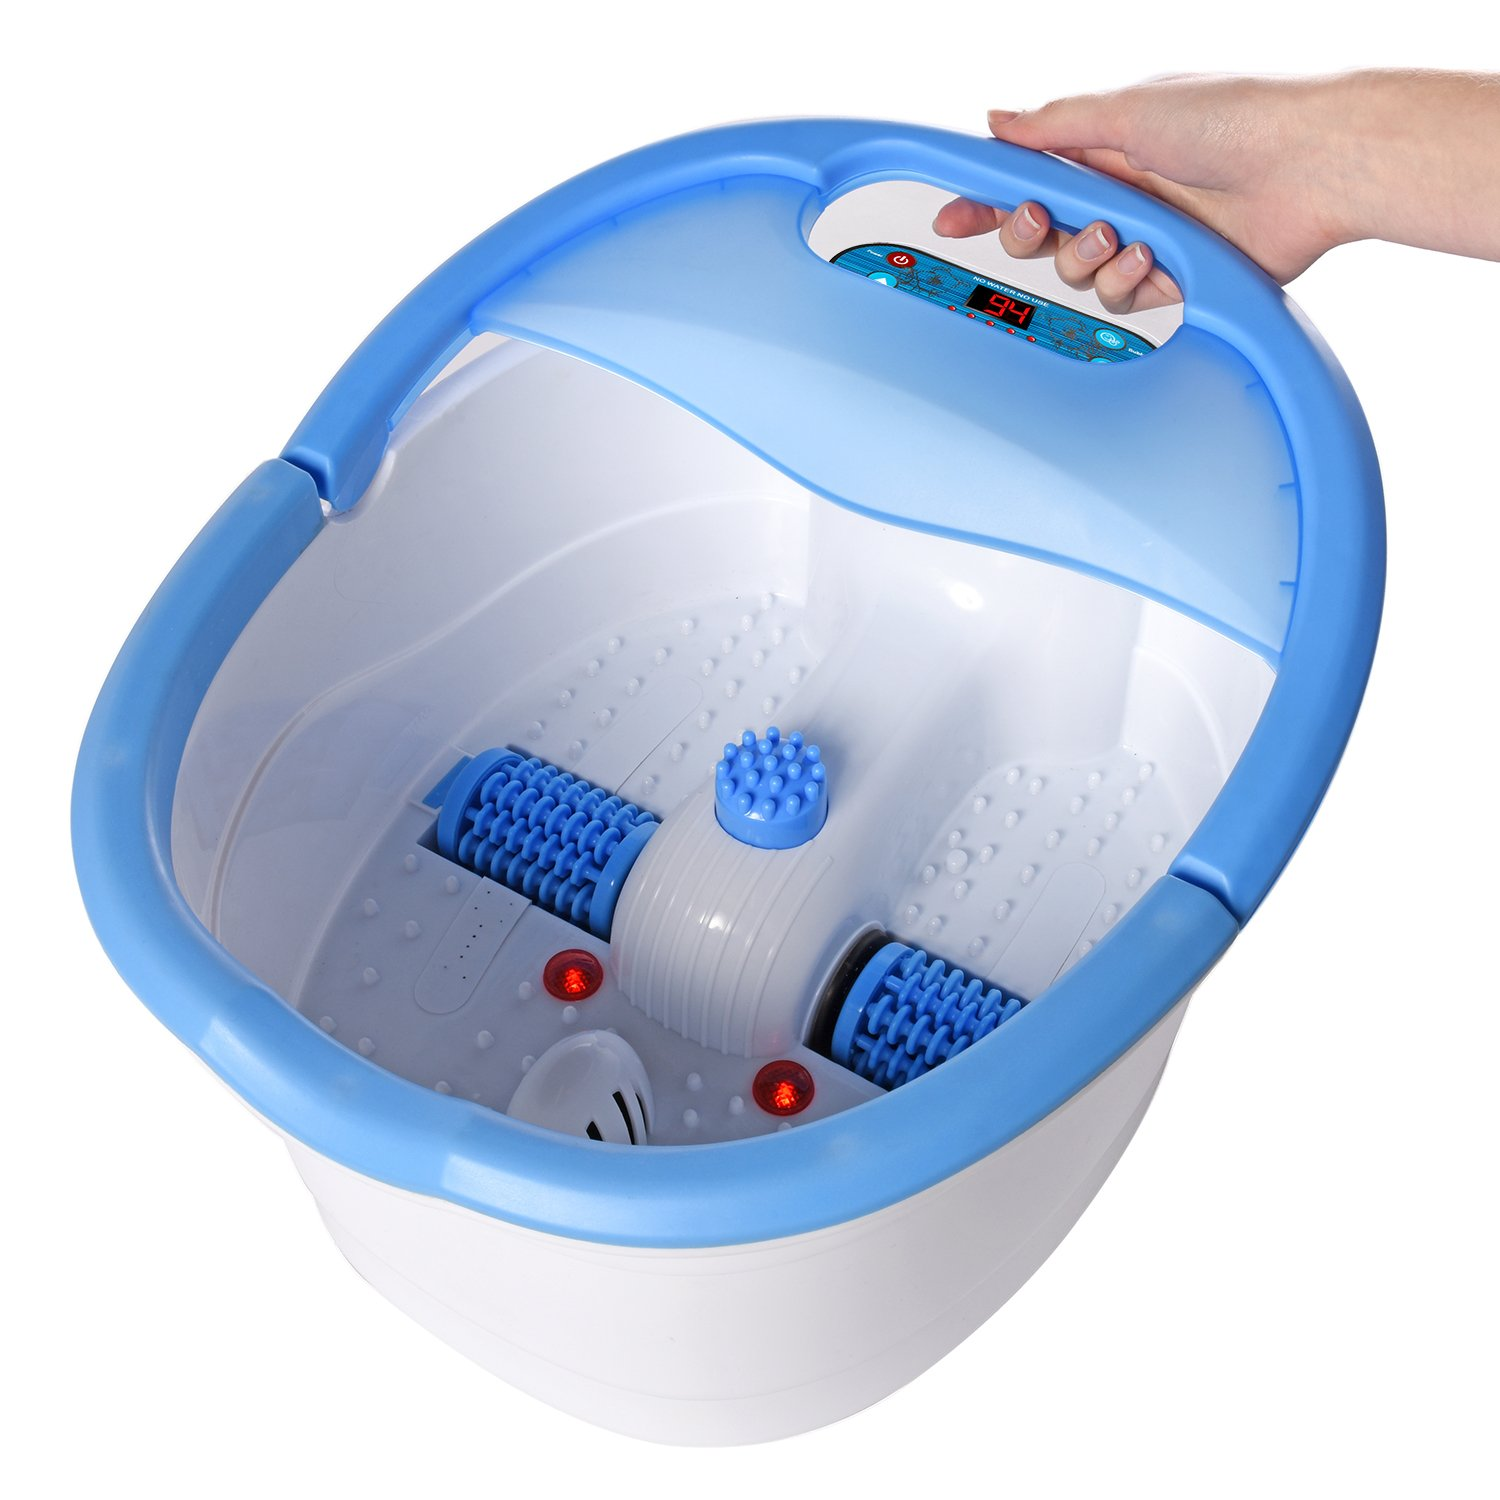 Ivation Multifunction Foot Spa - Heated Bath with Vibration, Rollers ...